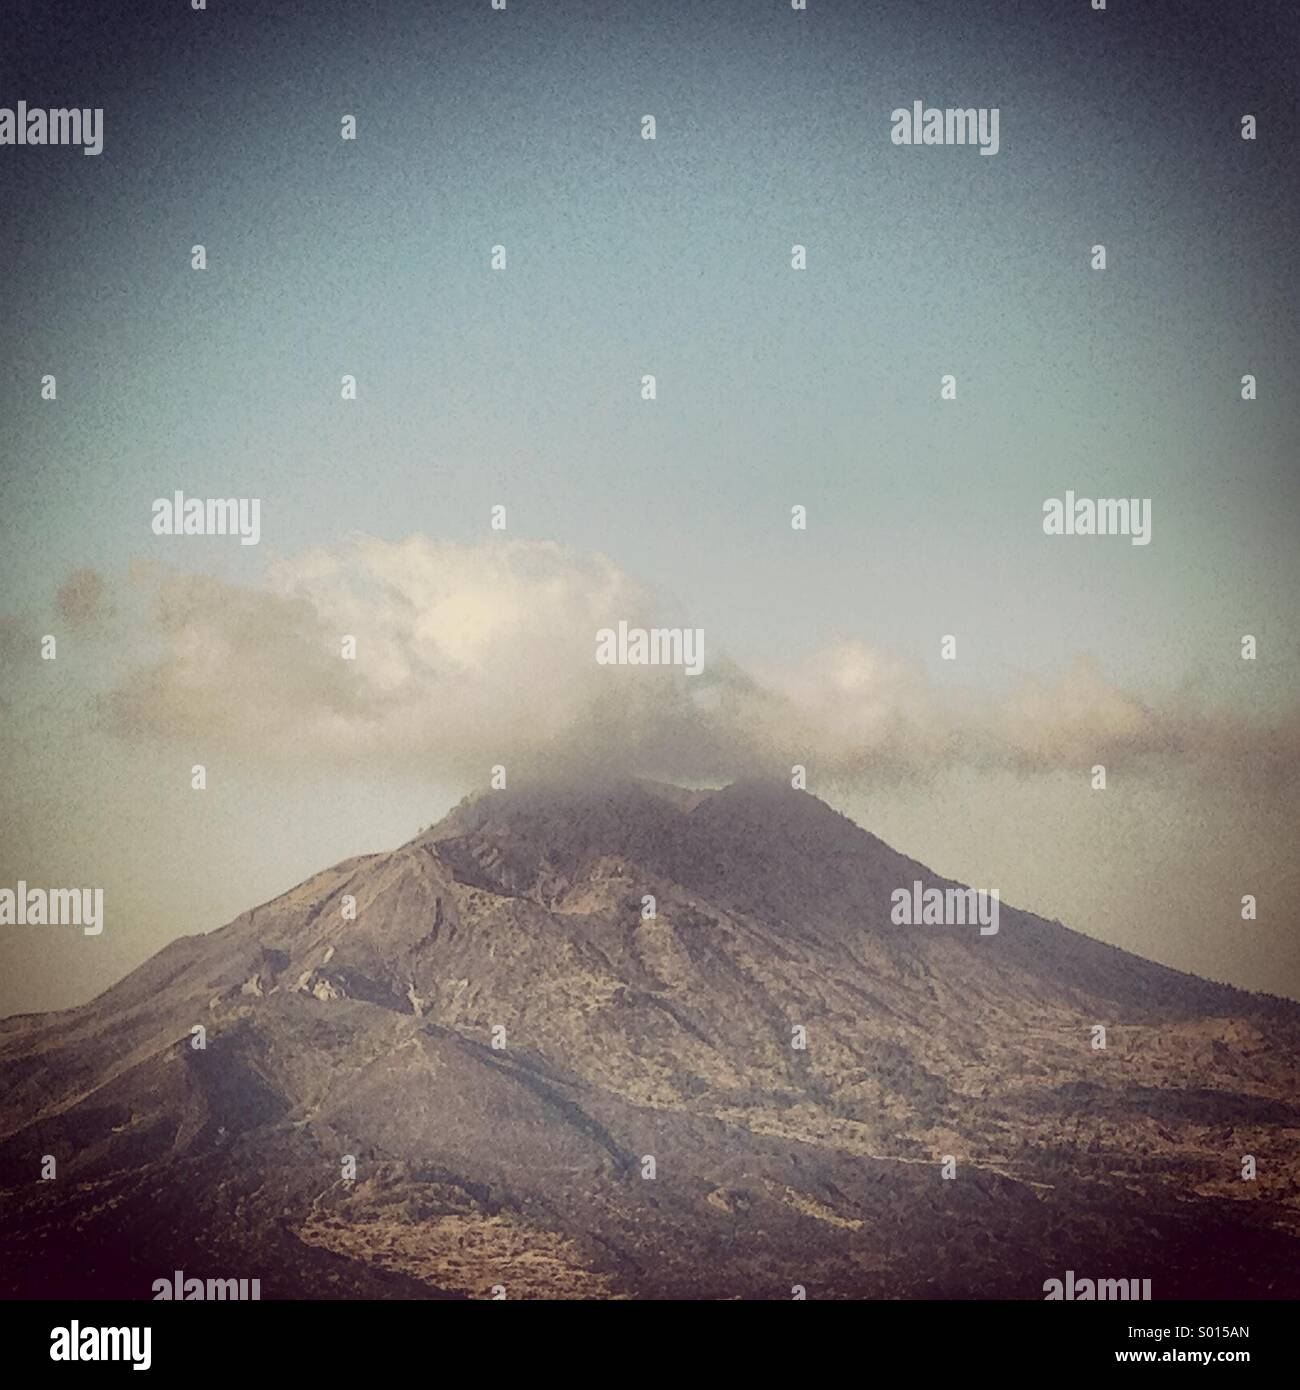 Mount Agung volcano, Bali, Indonesia - Stock Image